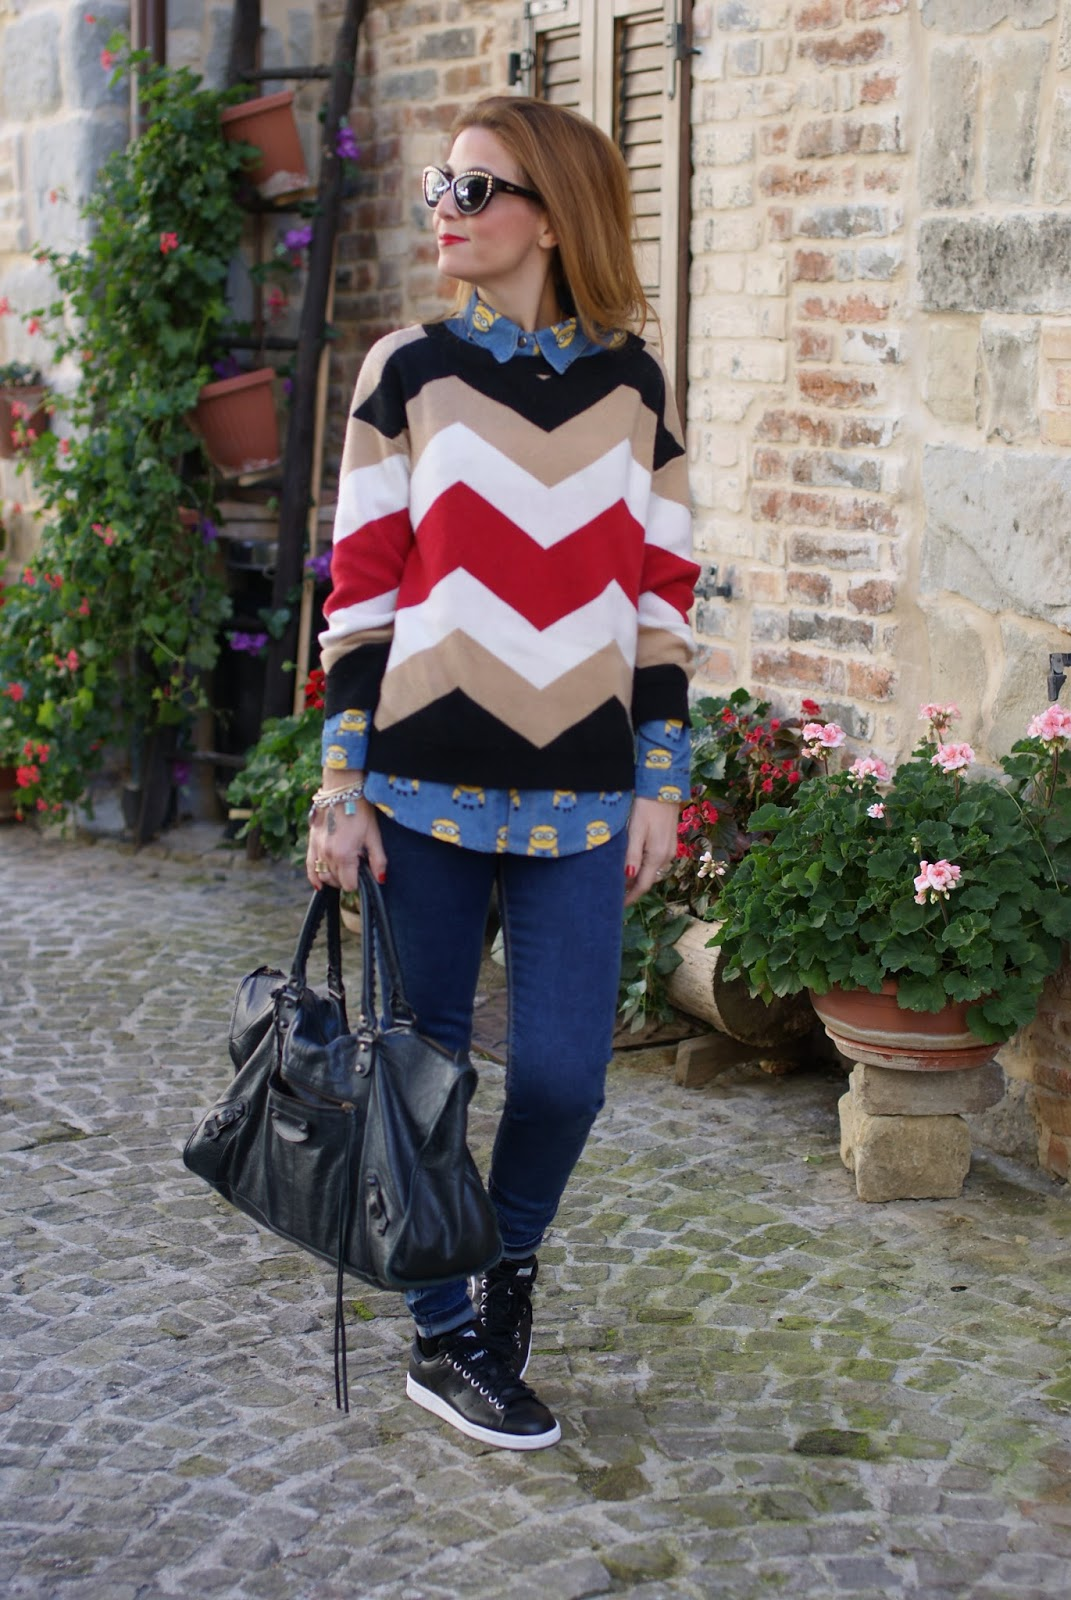 Chevron sweater and stan smith sneakers on Fashion and Cookies fashion blog, fashion blogger style